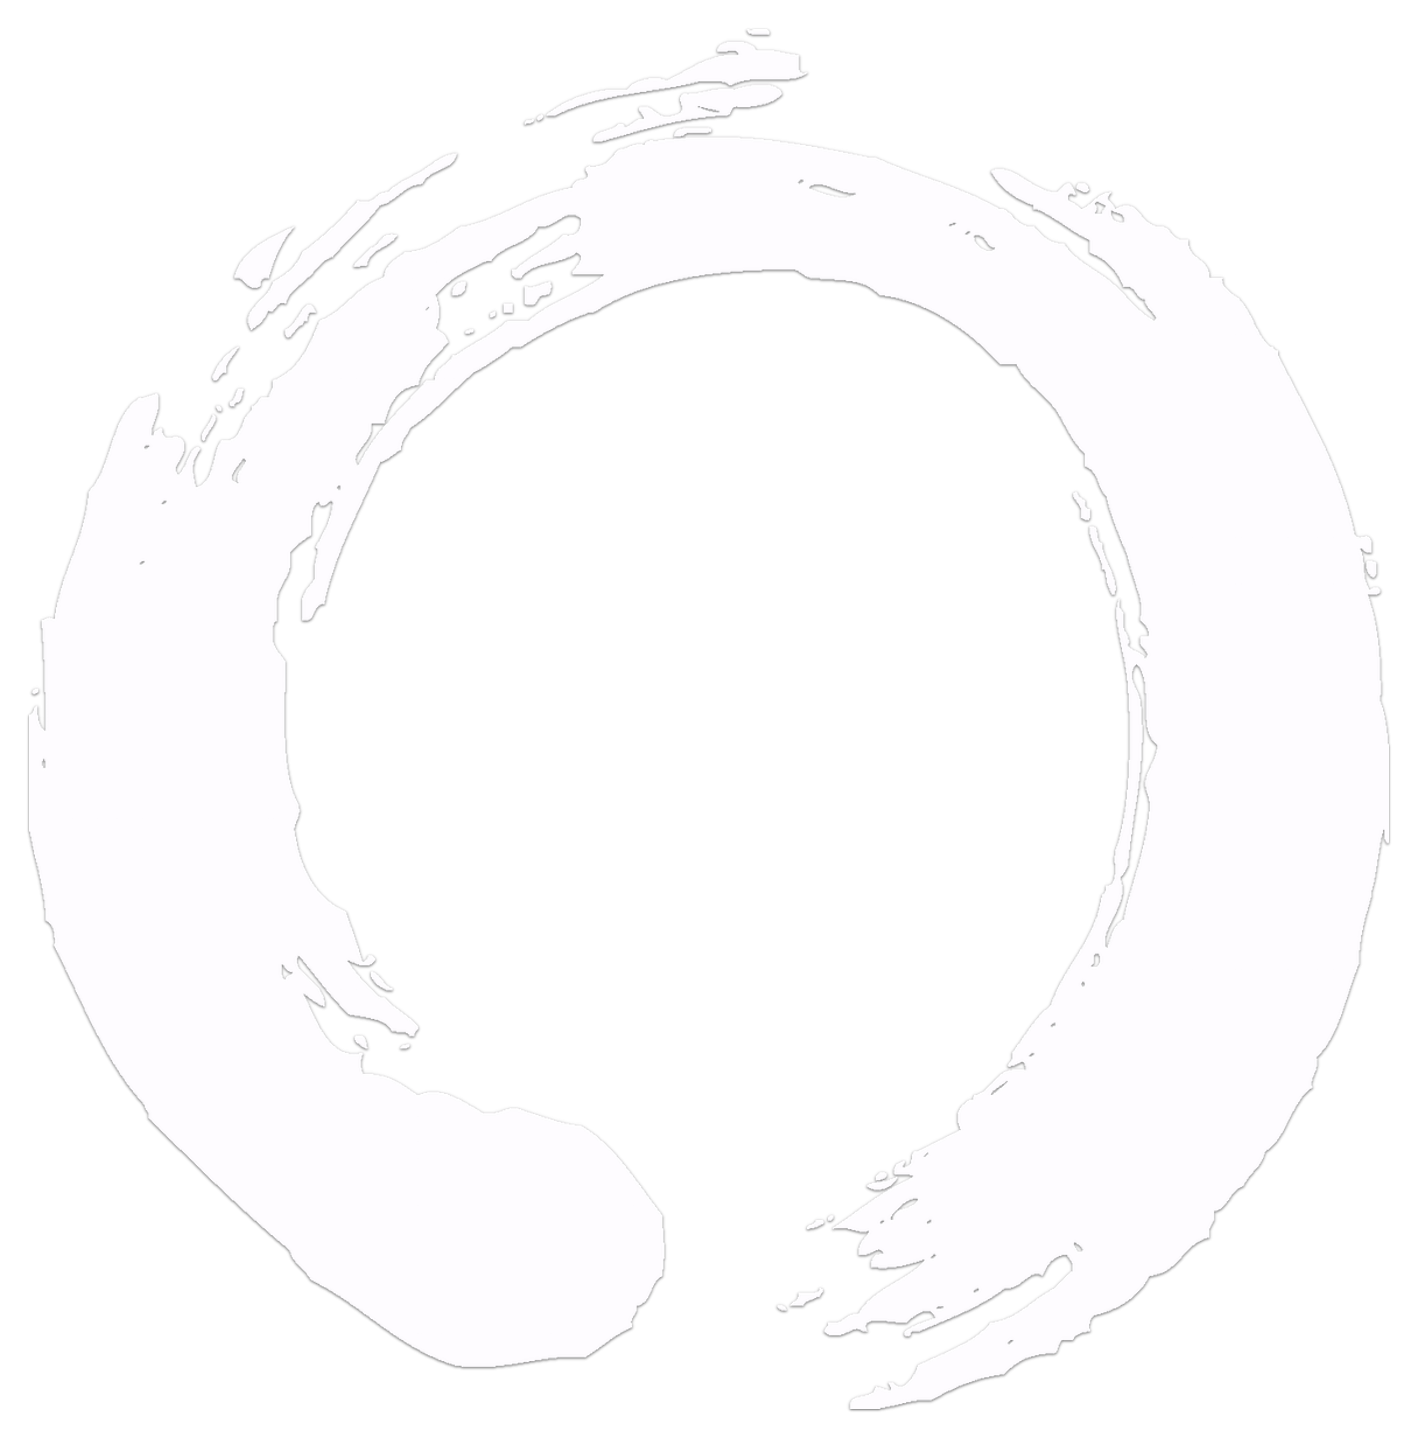 RZ Productions